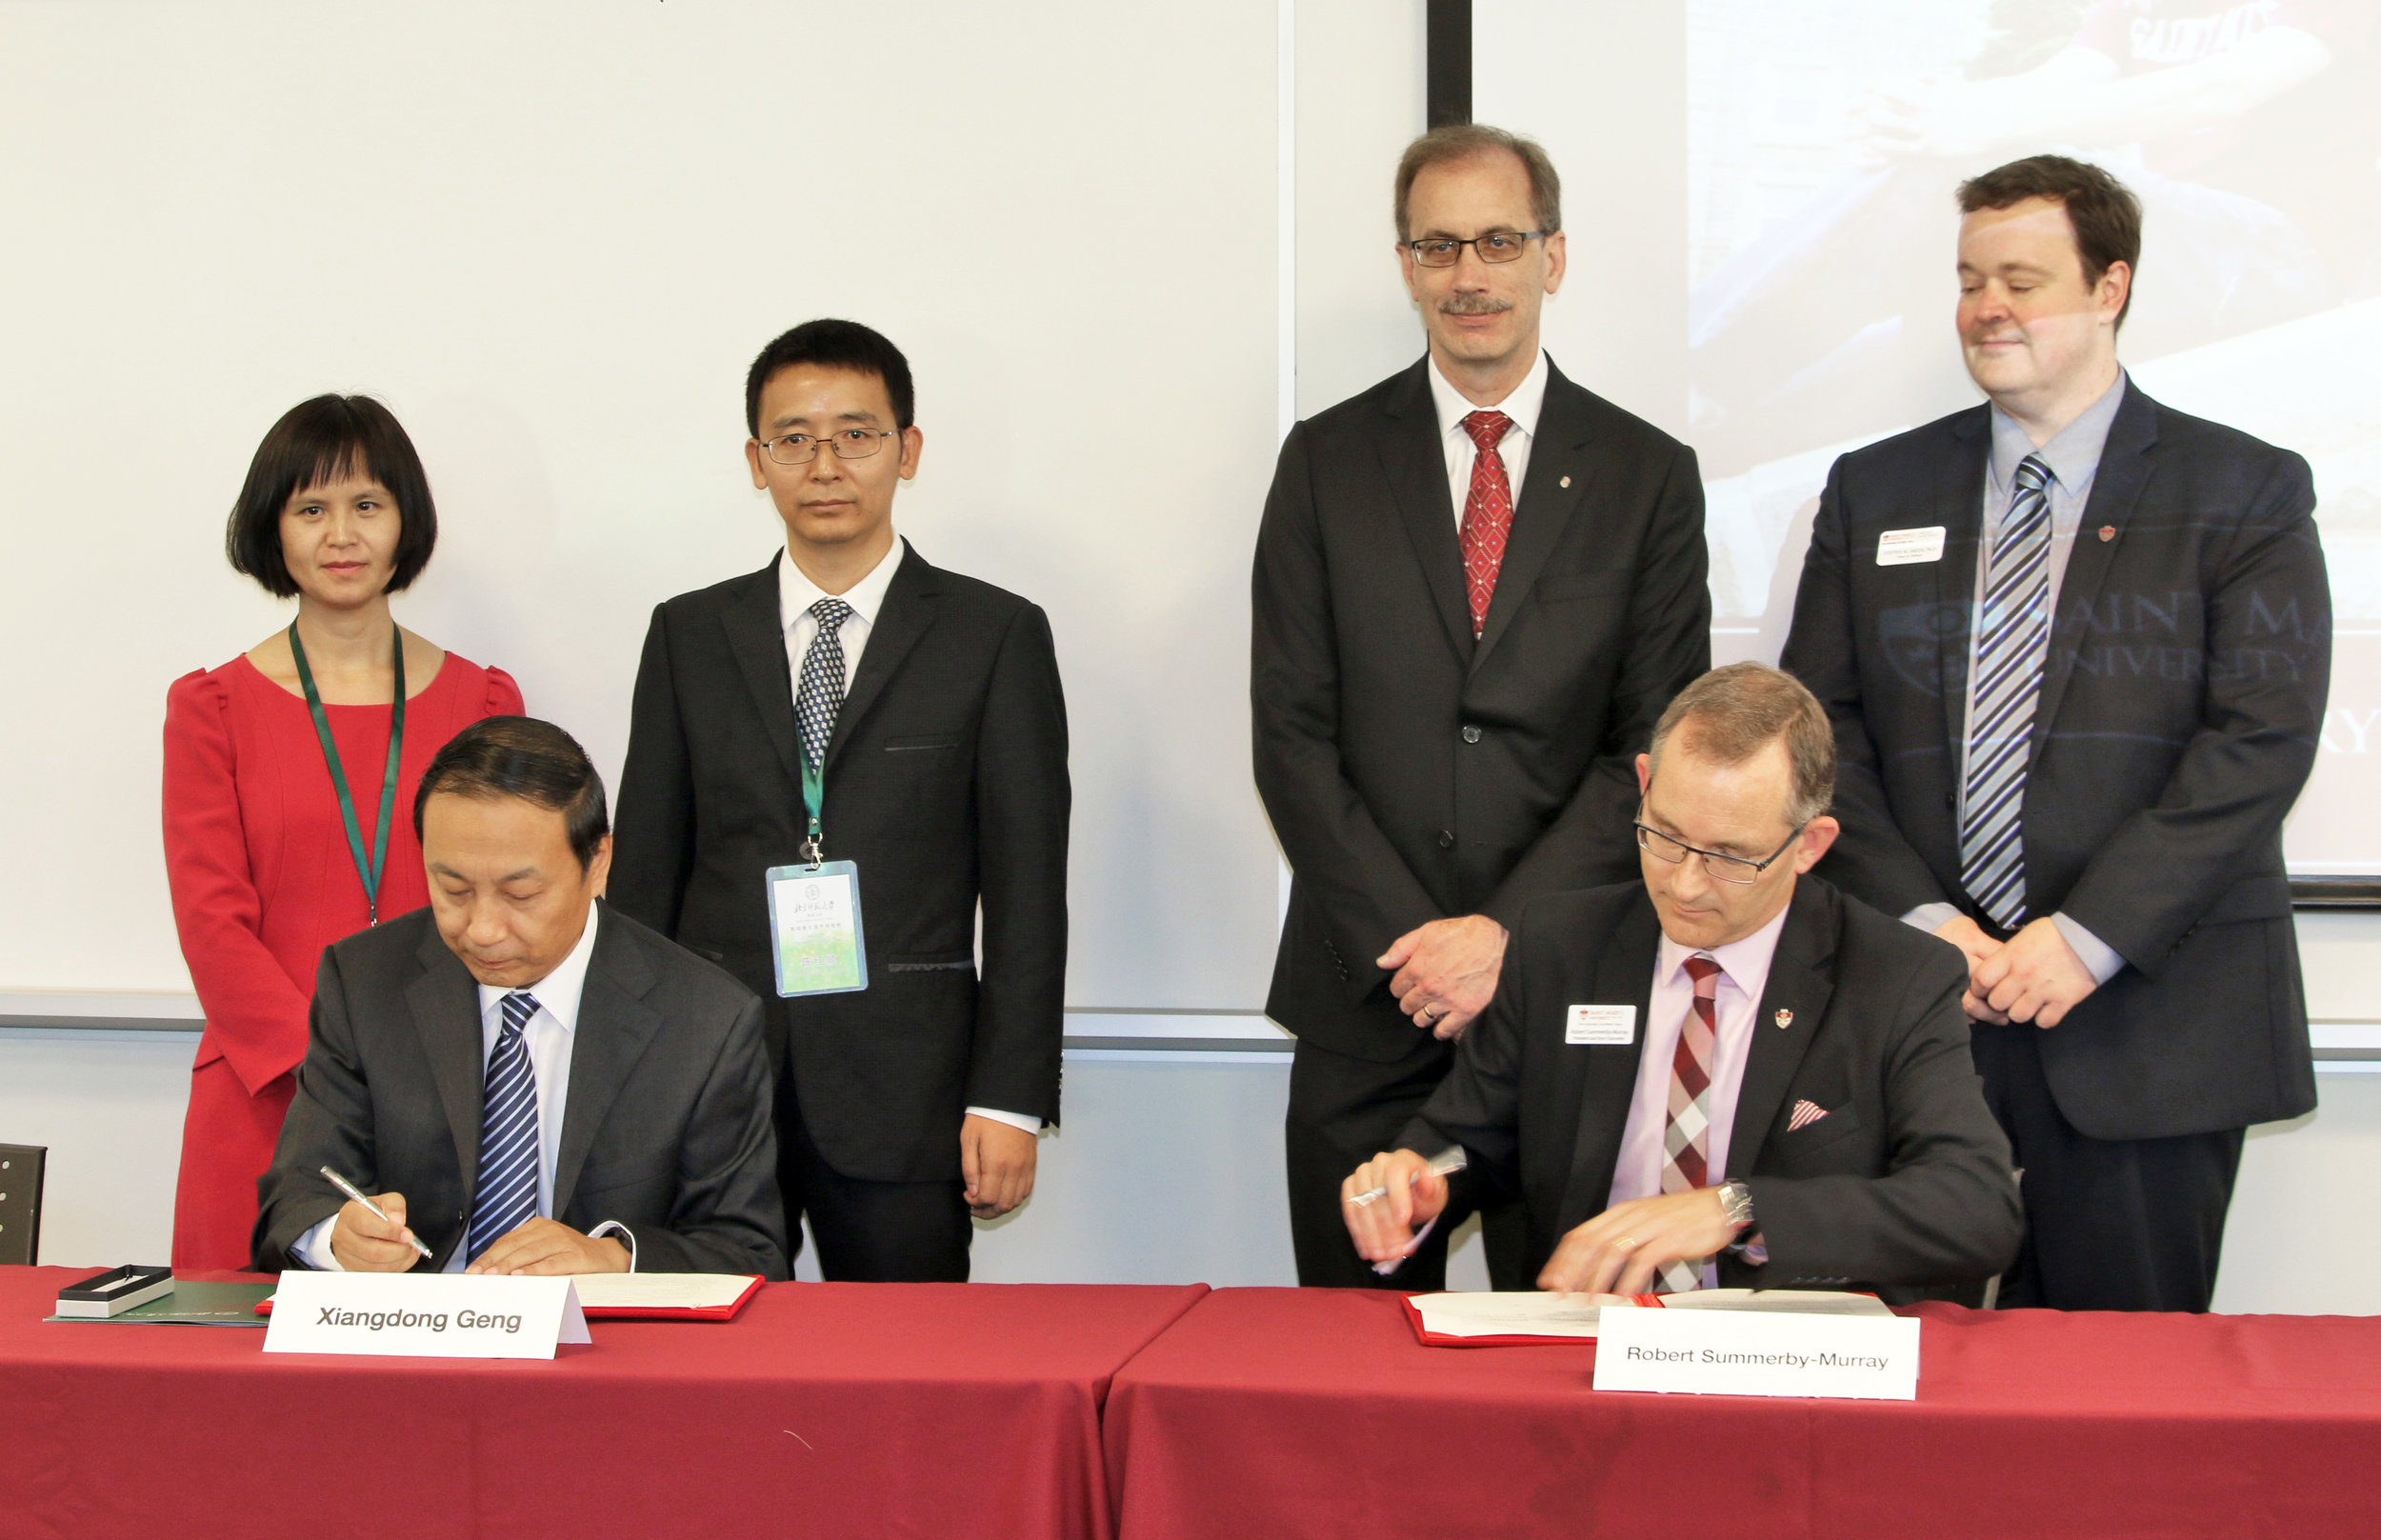 Seated:  Xiangdong Geng, Chair of University Council, BNUZ; Dr. Robert Summerby-Murray, President, SMU  Standing:  Professors Hongyu Xiao and Hongshun Chen, Faculty Members, School of Information Technology, BNUZ; Dr. Malcolm Butler, VP Academic and Research, SMU; Dr. Steven Smith, Dean, Faculty of Science, SMU